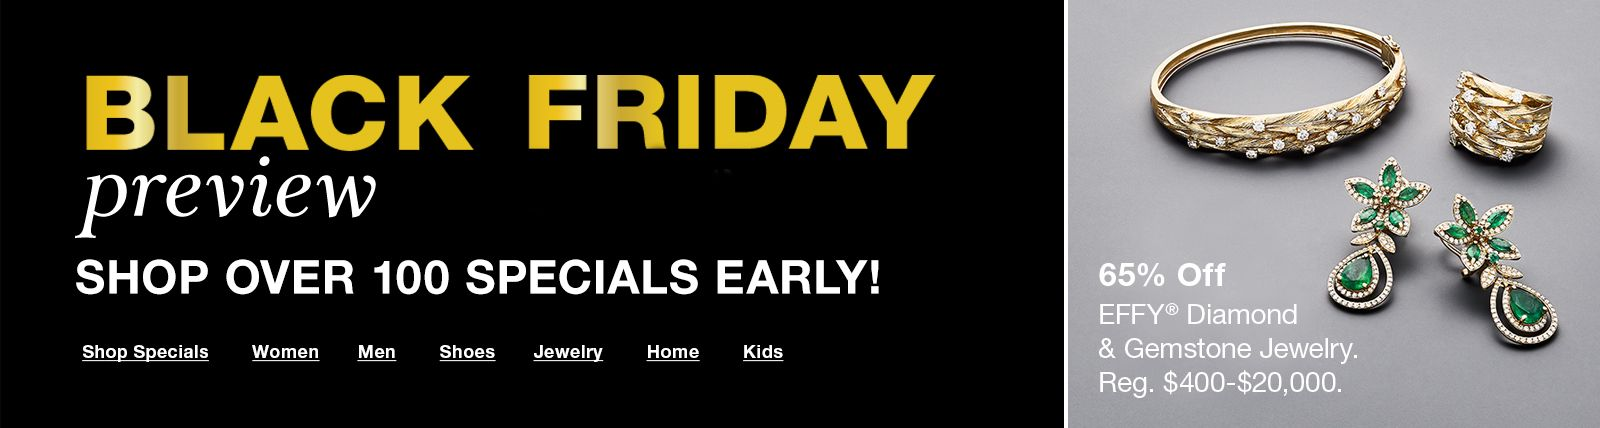 Black Friday, preview, Shop Over 100 Specials Early! Shop Specials, Wome, Men, Shoes, Jewelry, Home, Kids, 65 percent Off, Effy Diamond and Gemstone Jewelry